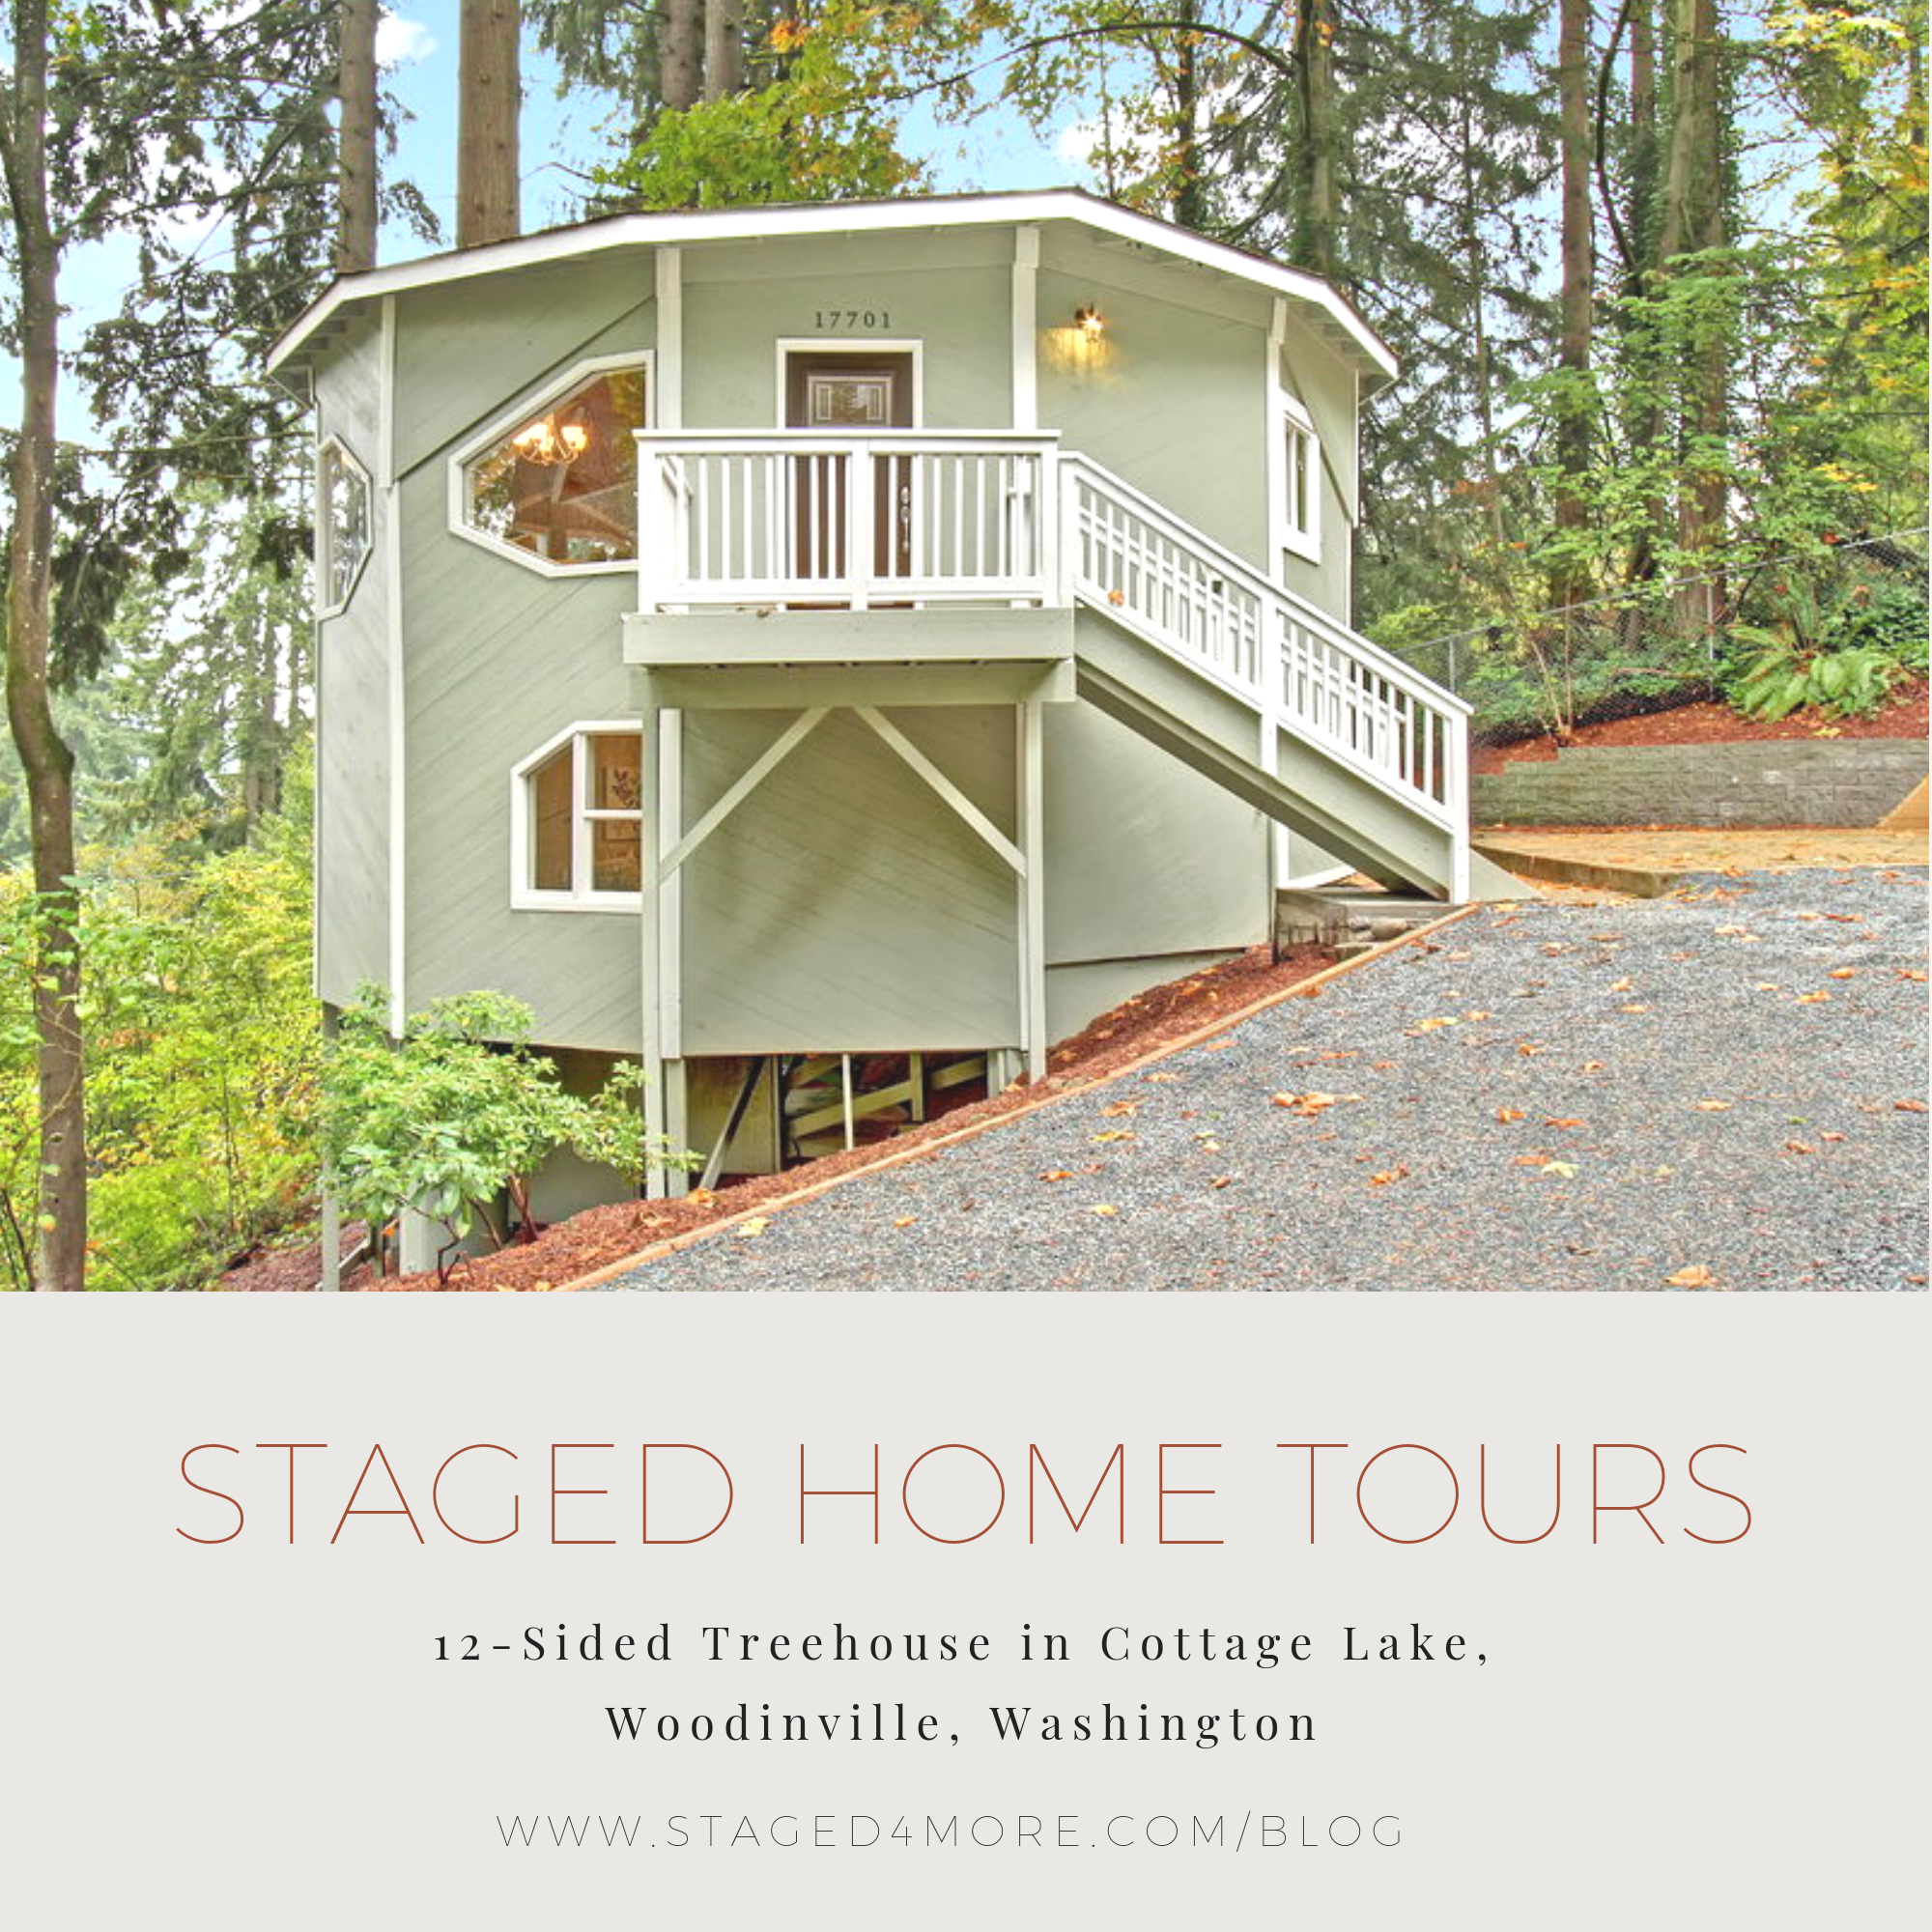 Staged4more Staged Home Tour Woodinville Cottage Lake Washington Tree House